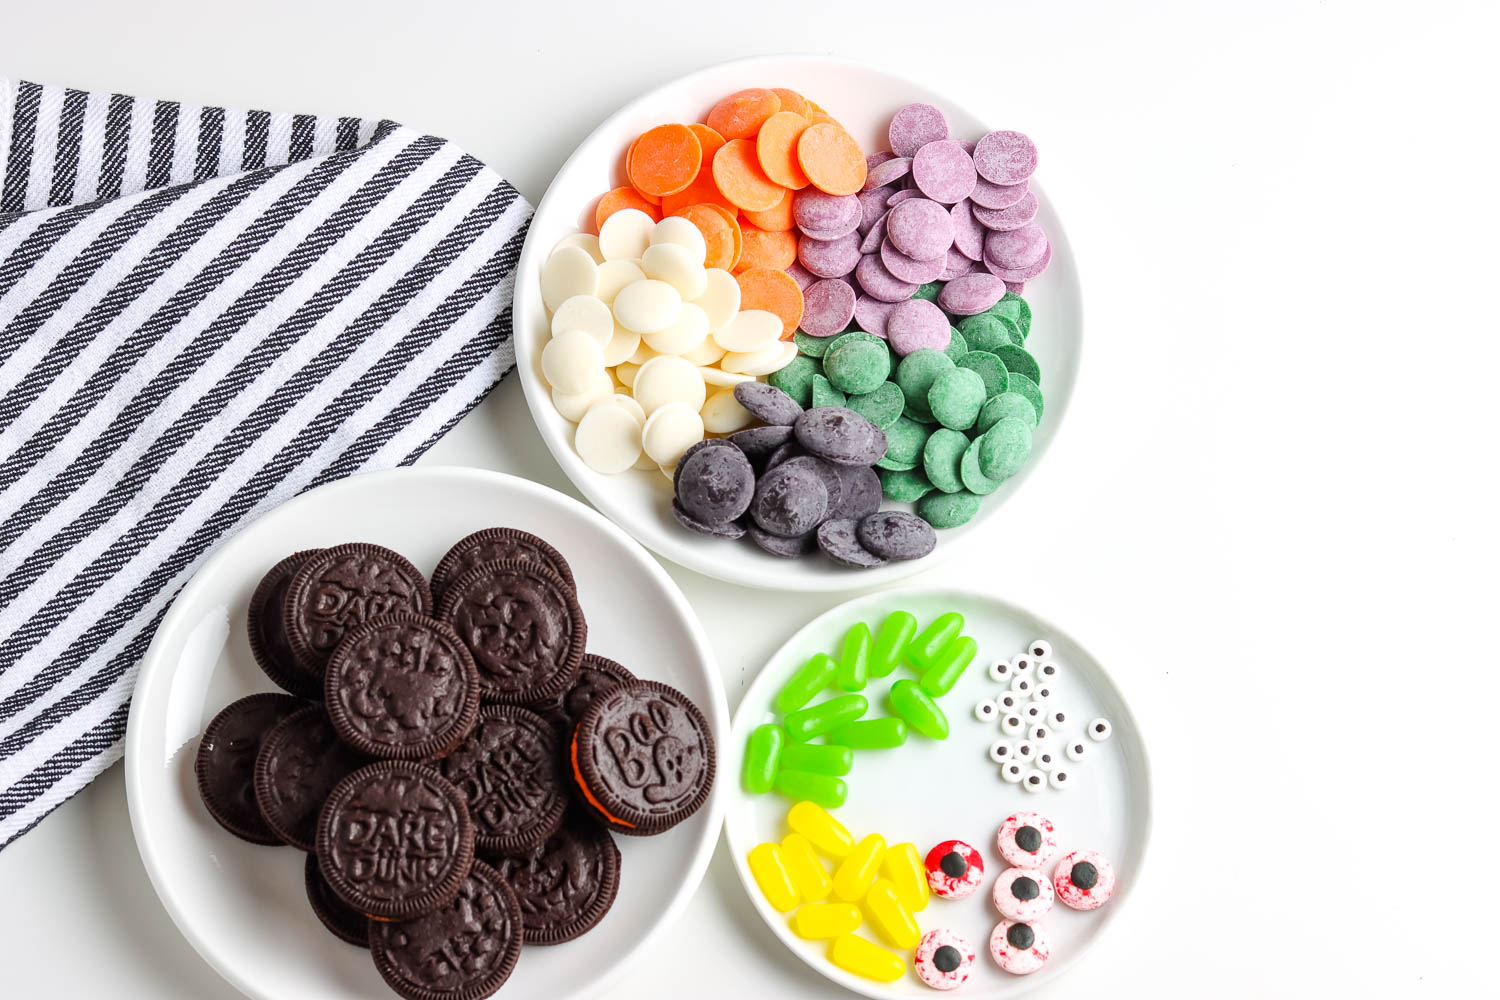 All of the ingredients needed to make these Halloween Chocolate Dipped Oreos recipe.